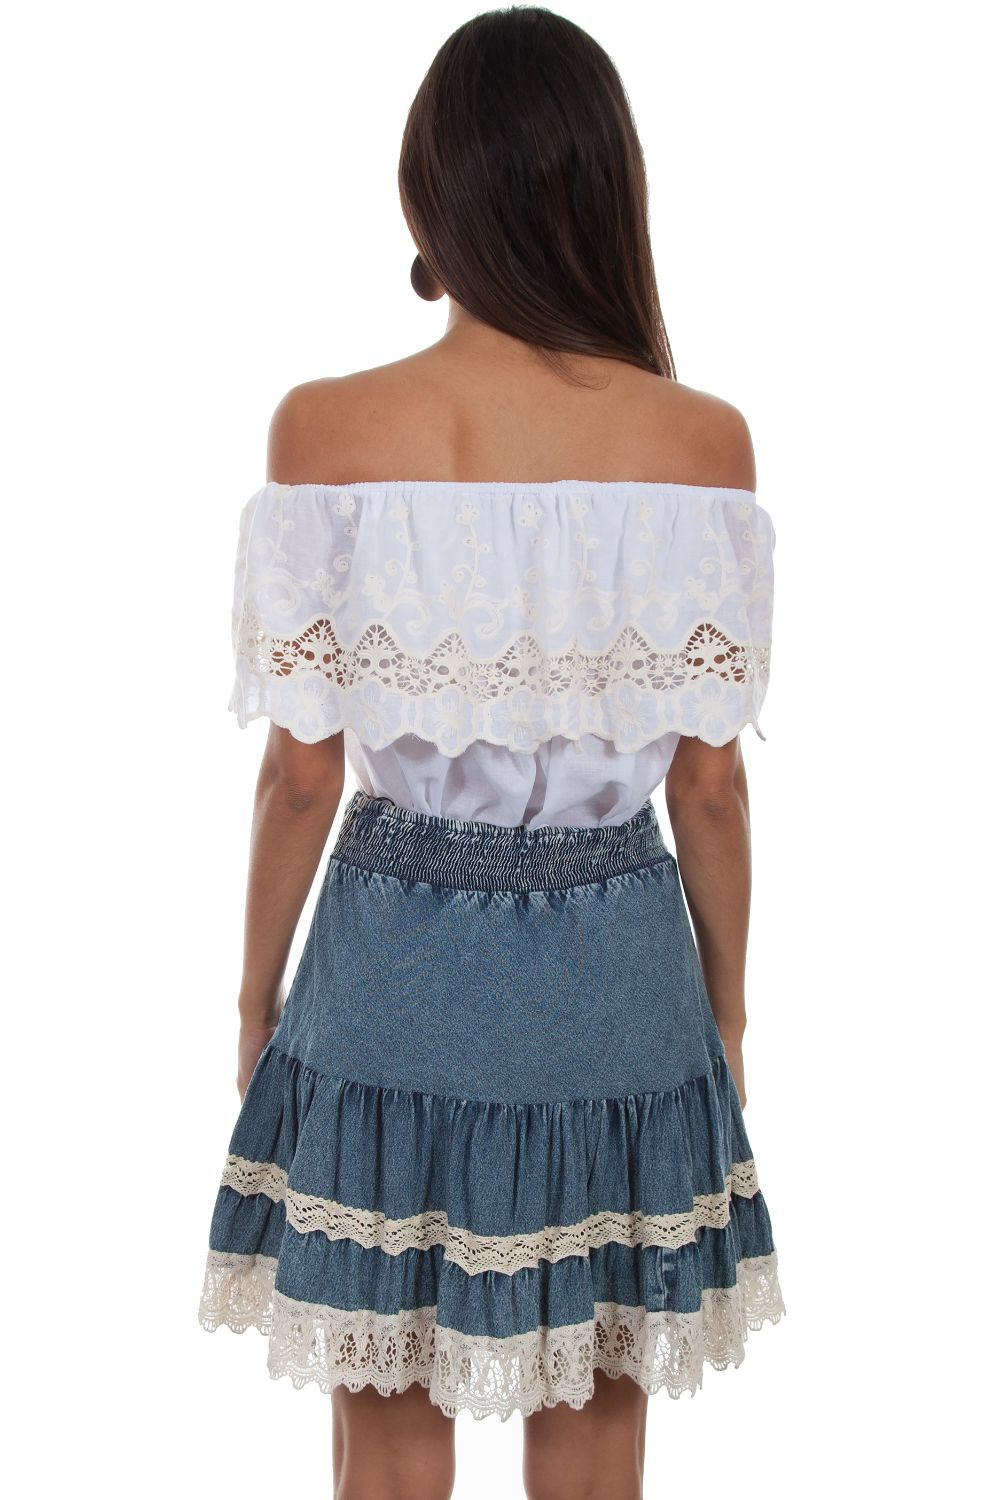 Scully Fashion Wear - ACID WASH TIERED SKIRT W/LACE TRIM - HC475 - DENIM - 2 from Ann N Eve Collection